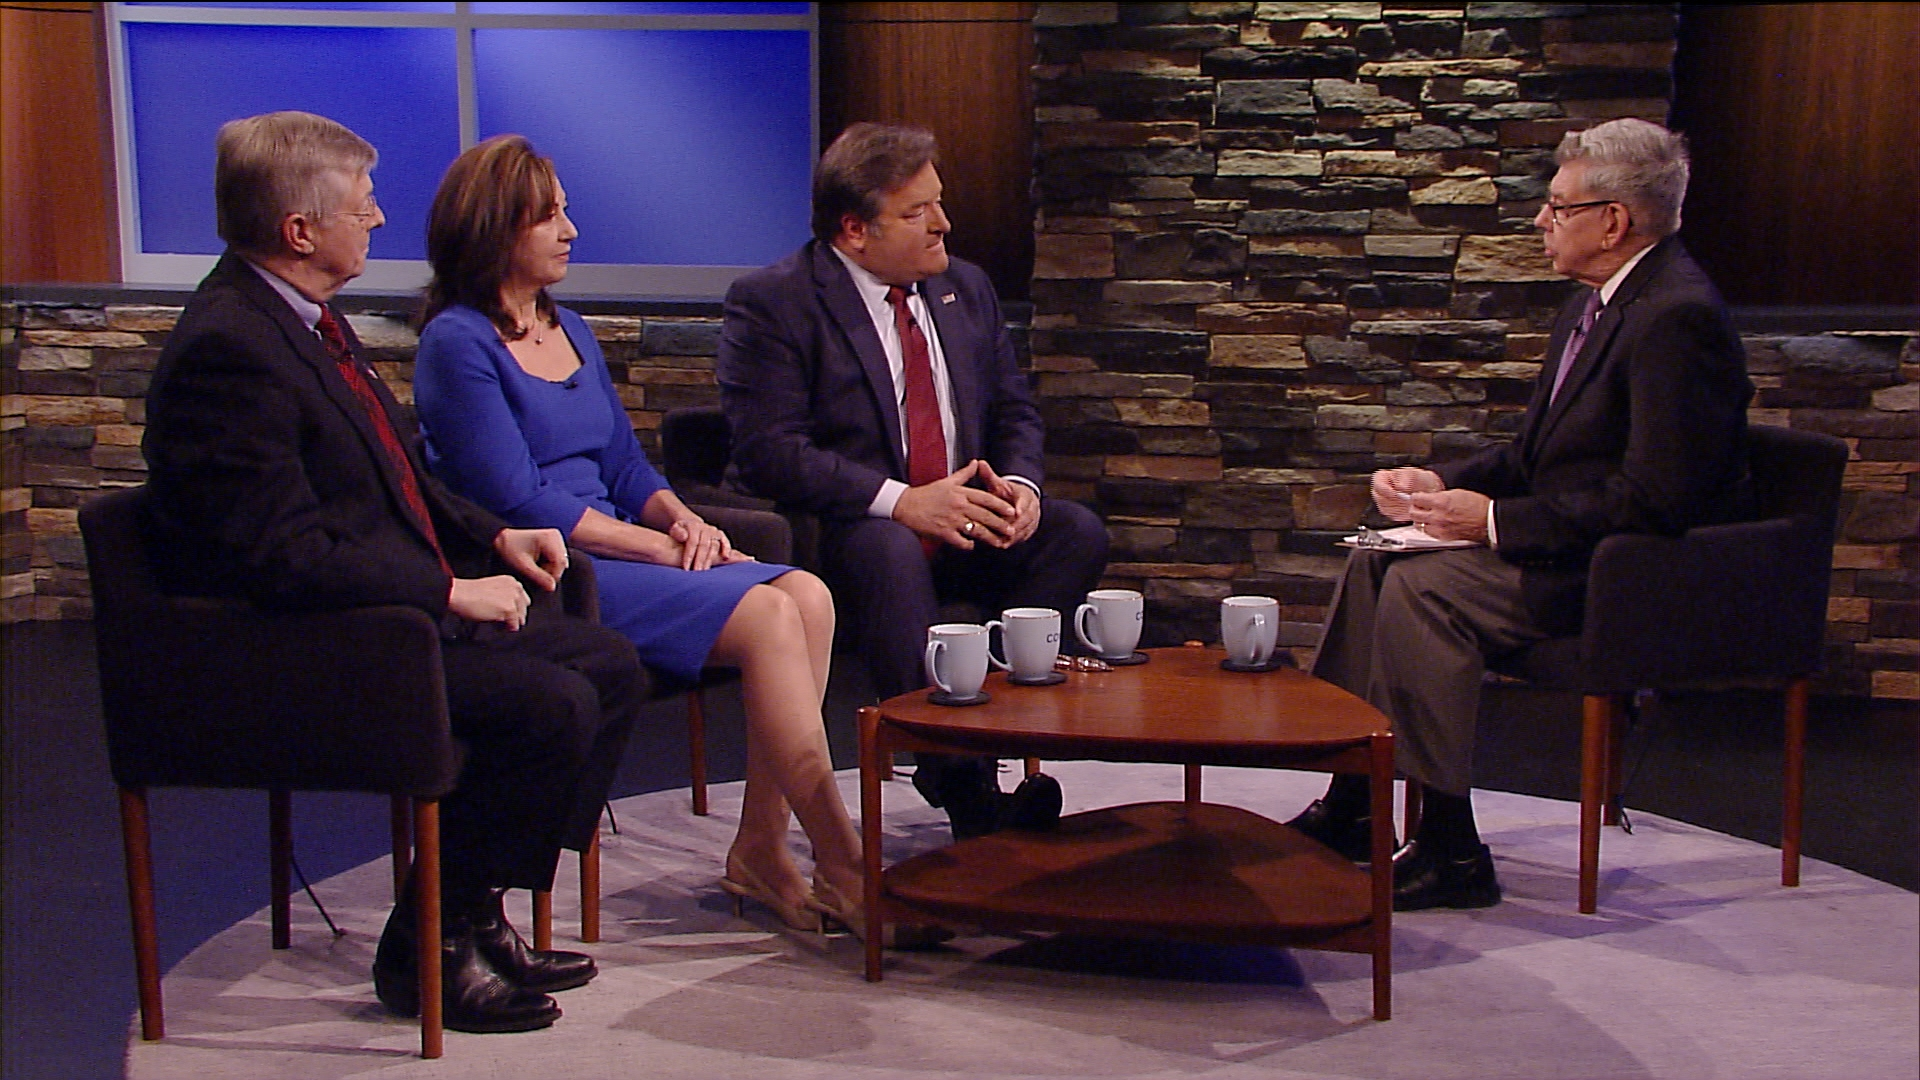 WATCH: A roundtable of western Mass political experts analyzes the results of the Super Tuesday primary and what they mean for the 2020 race for president.